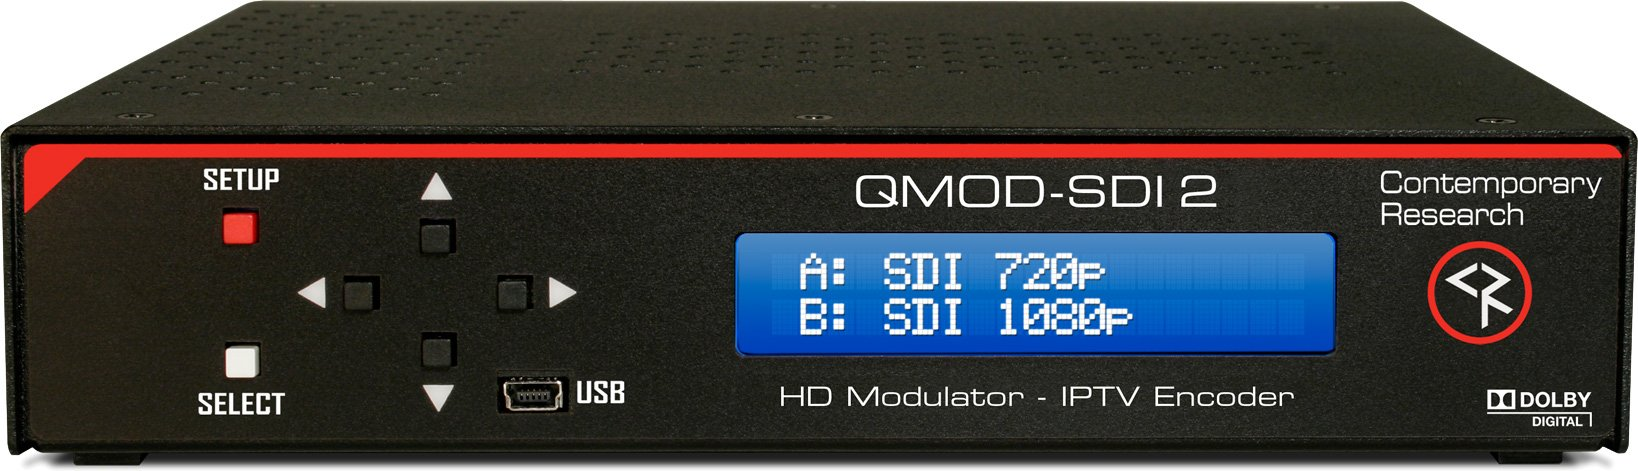 SDI Dual channel Modulator and Composite In and Agile QAM Output